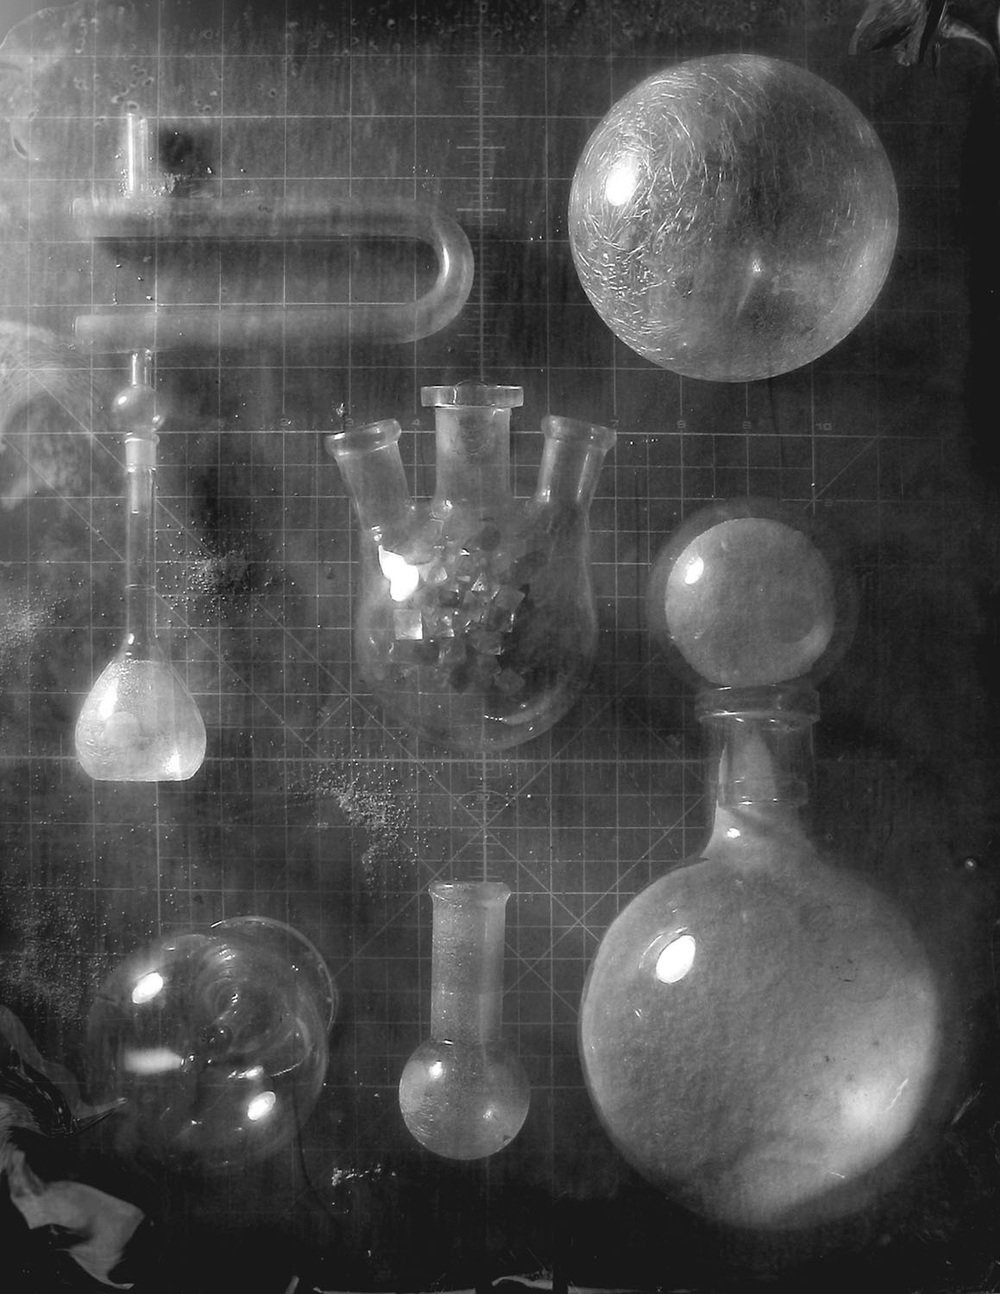 An array of glass chemistry vessels, image source unknown.